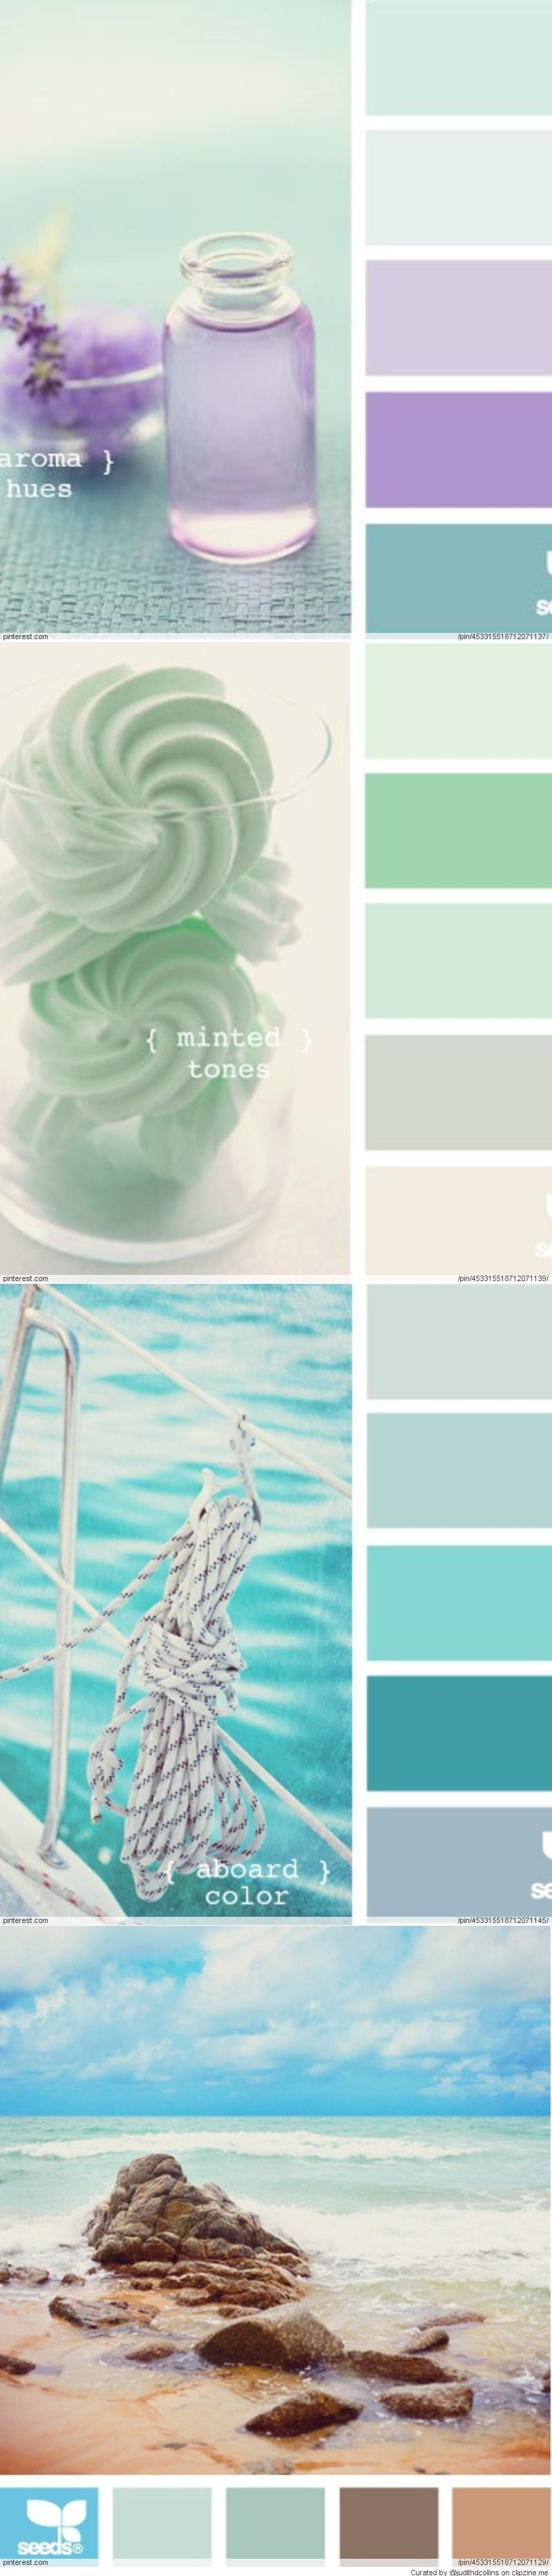 Design Most Calming Color color palettes calm serene for small spaces all about spaces